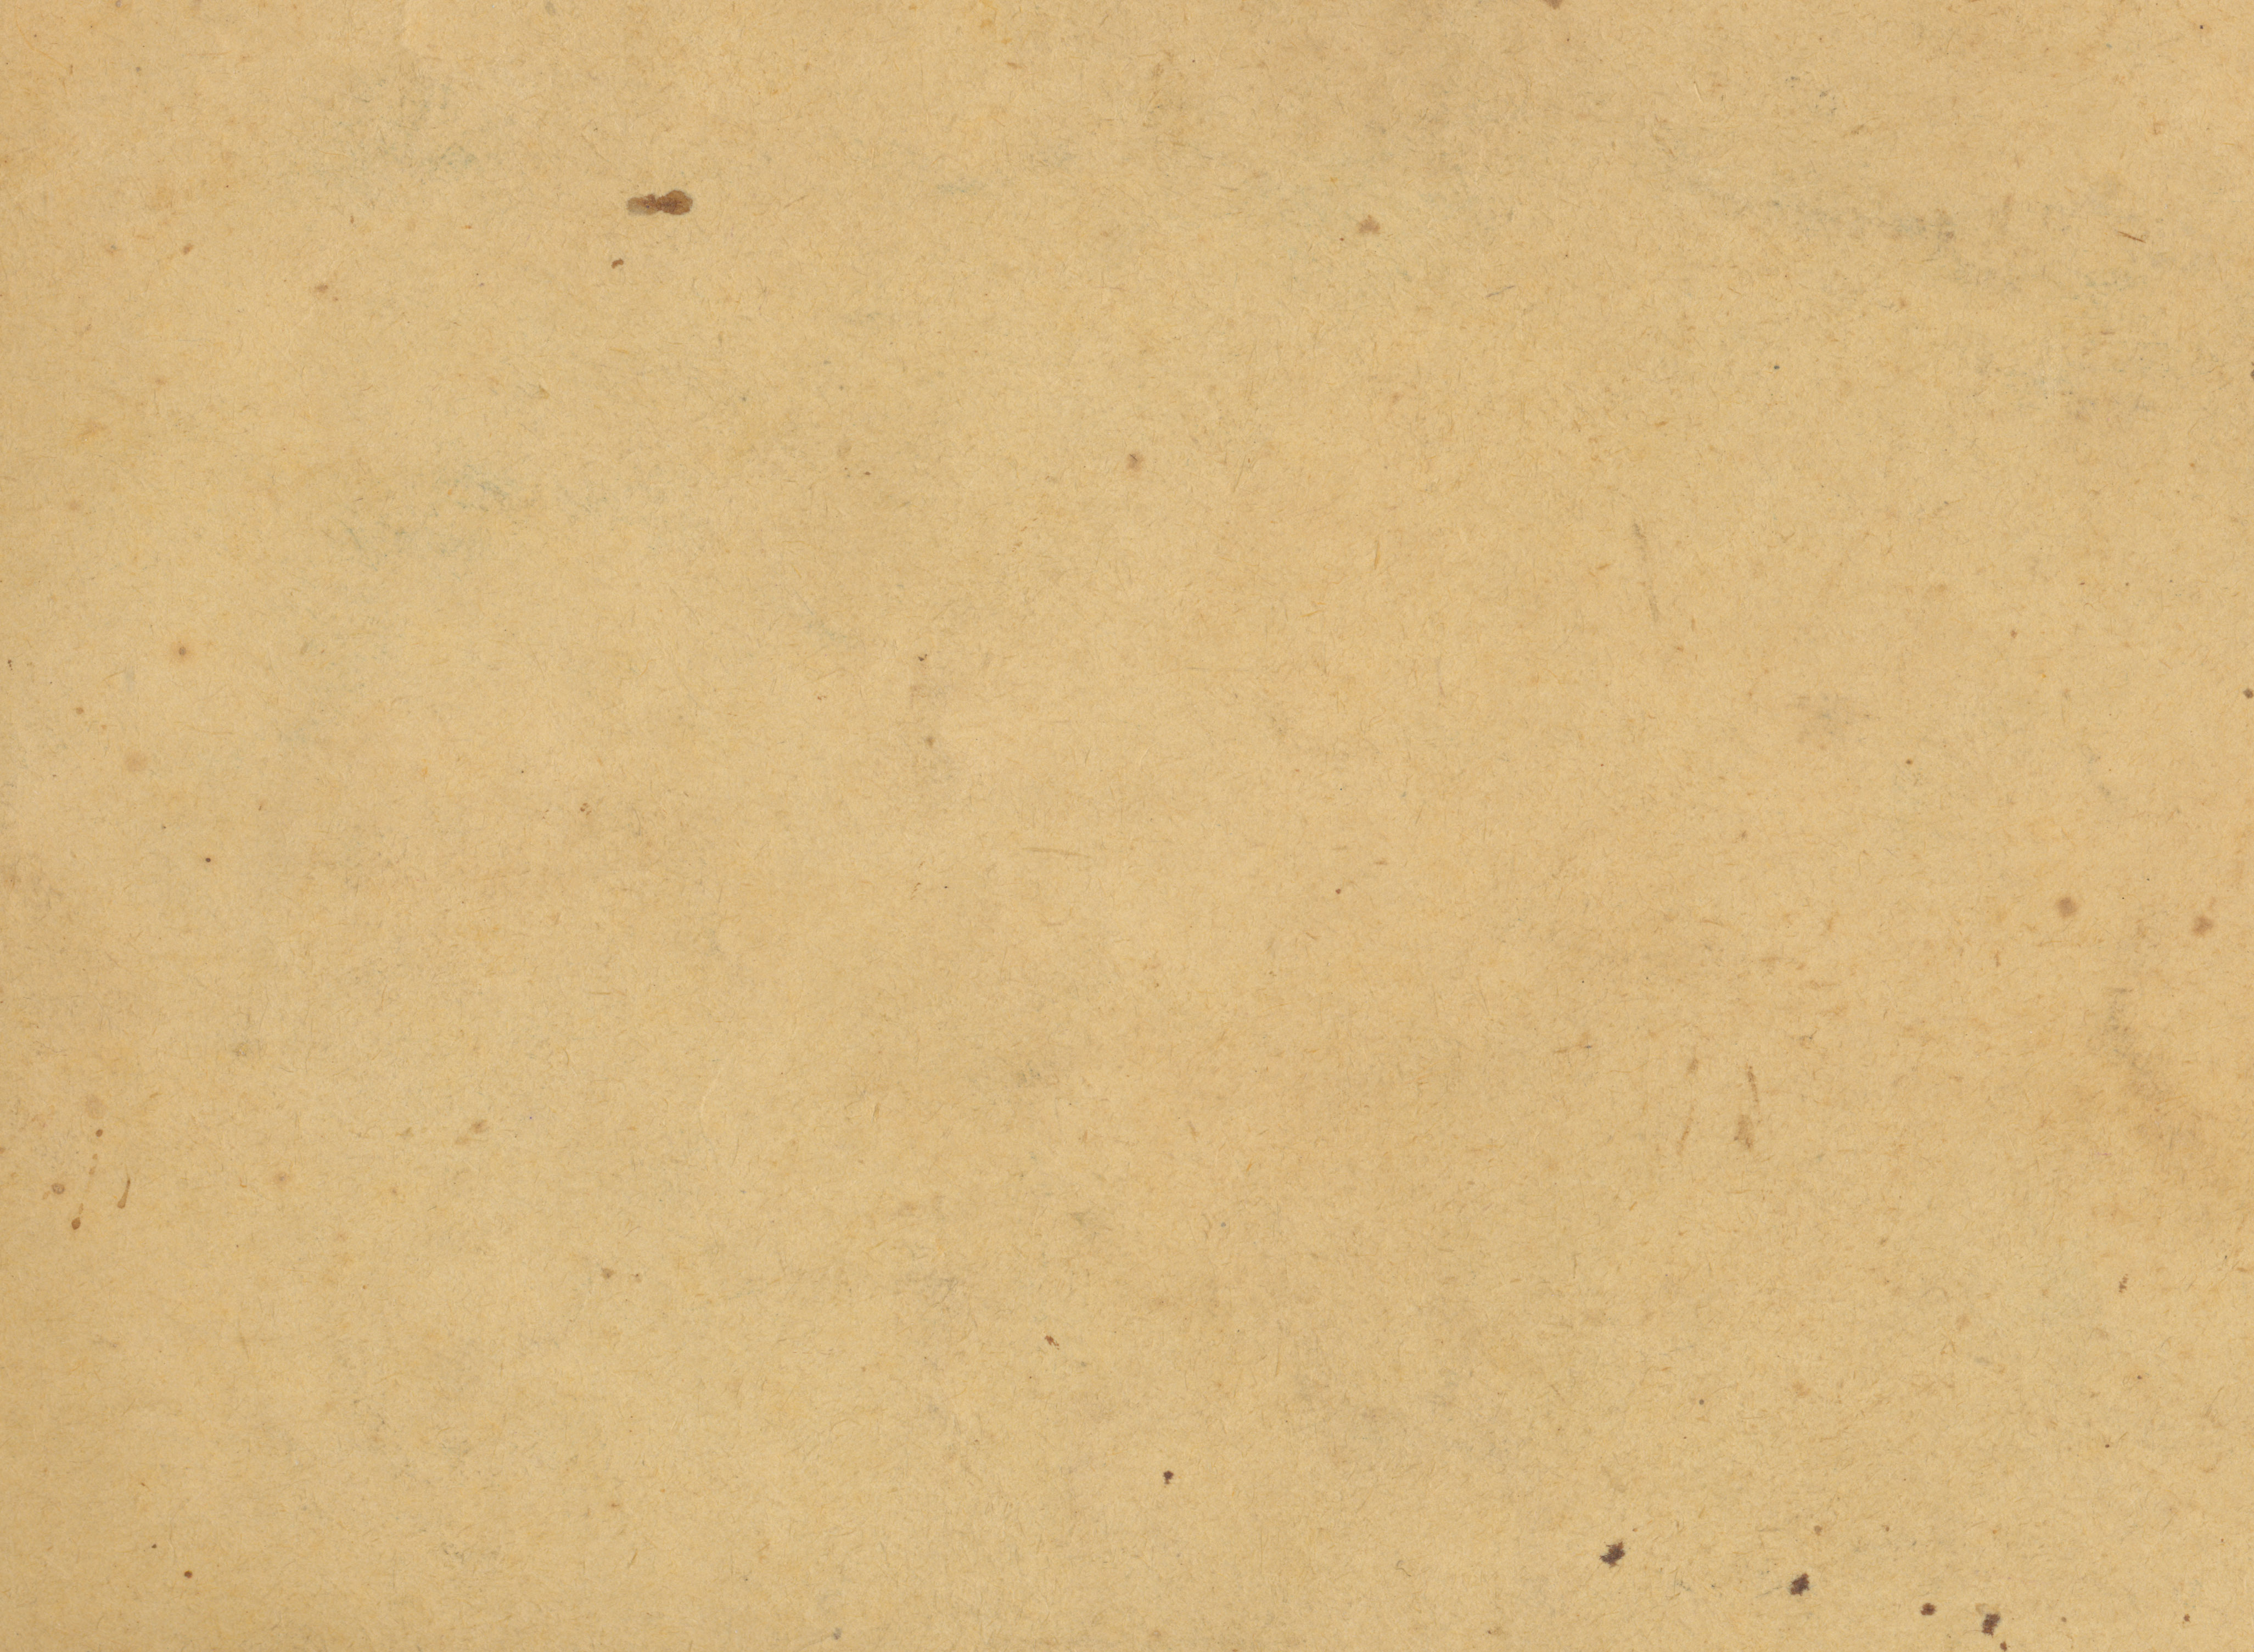 old brown paper vintage background texture backgrounds hd wallpaperBrown Paper Texture